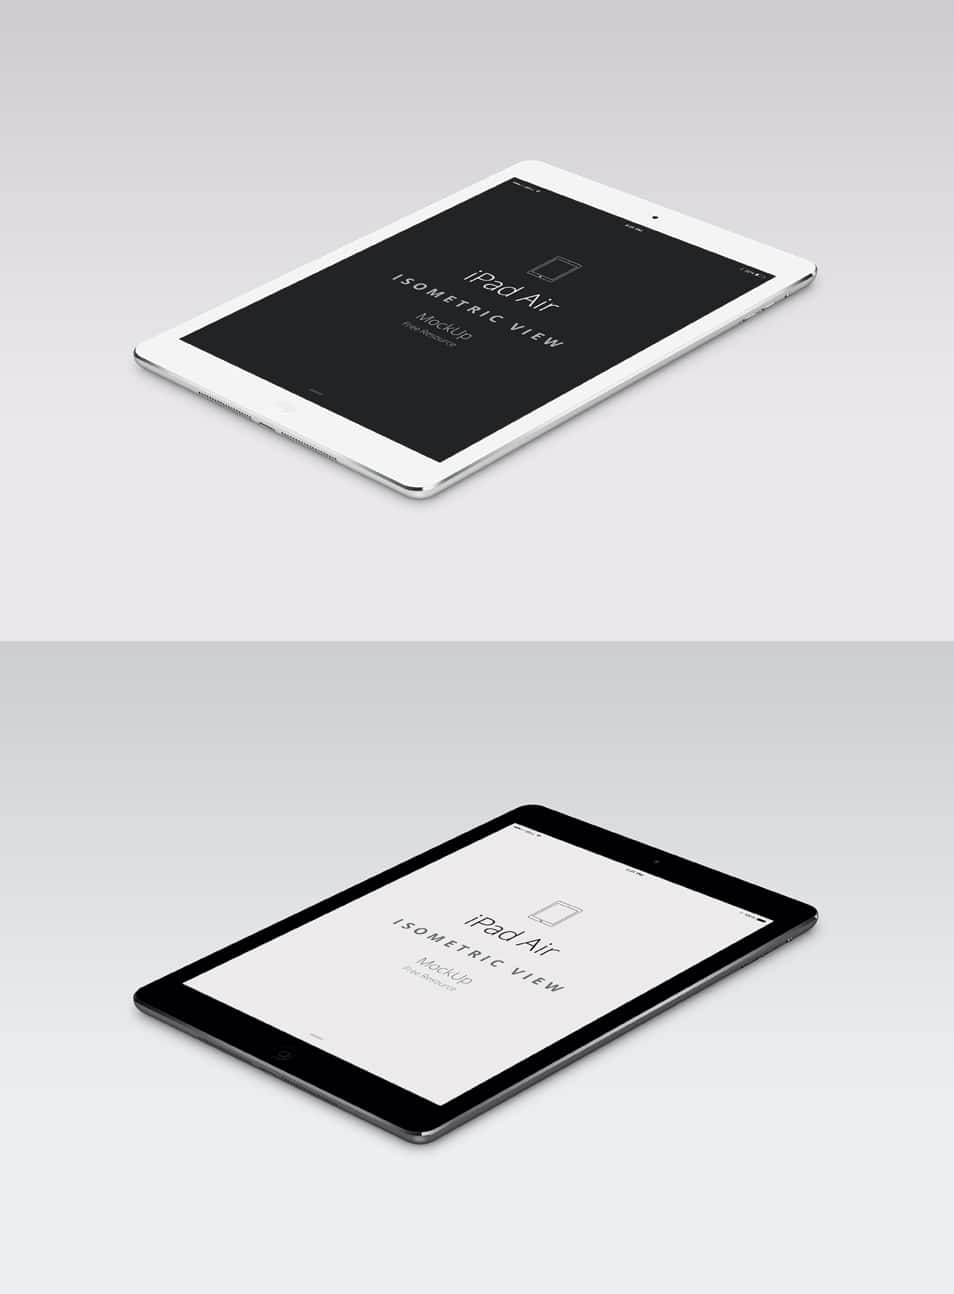 iPad Air Perspective Mockup PSD